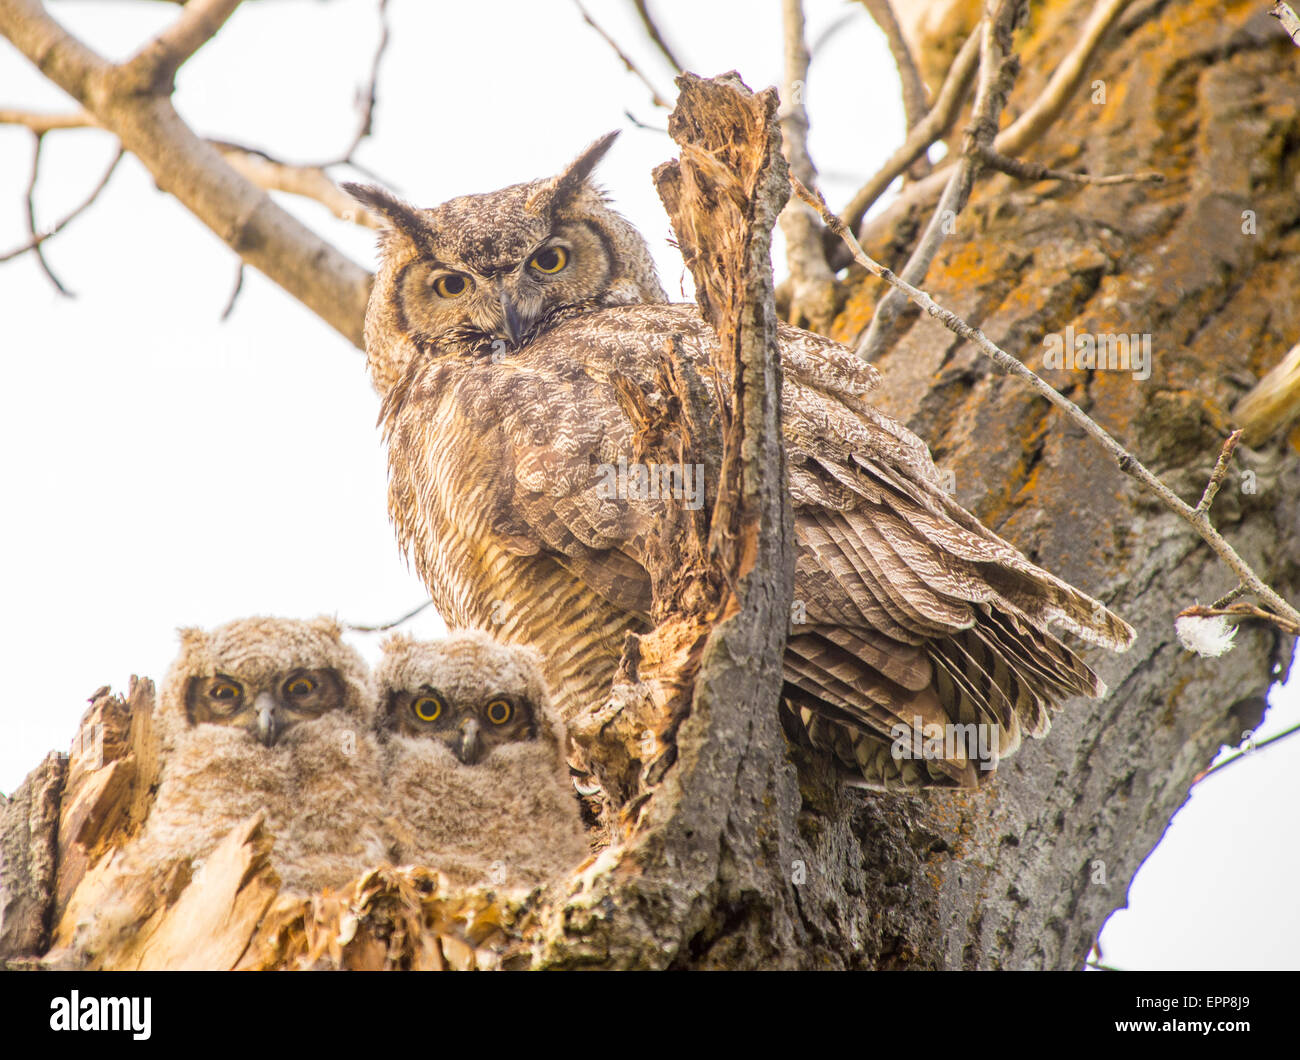 Owls, Great Horned Owl and new born Owlets perched in nest of tree cavity. Bose River Greenbelt, Boise. Idaho - Stock Image